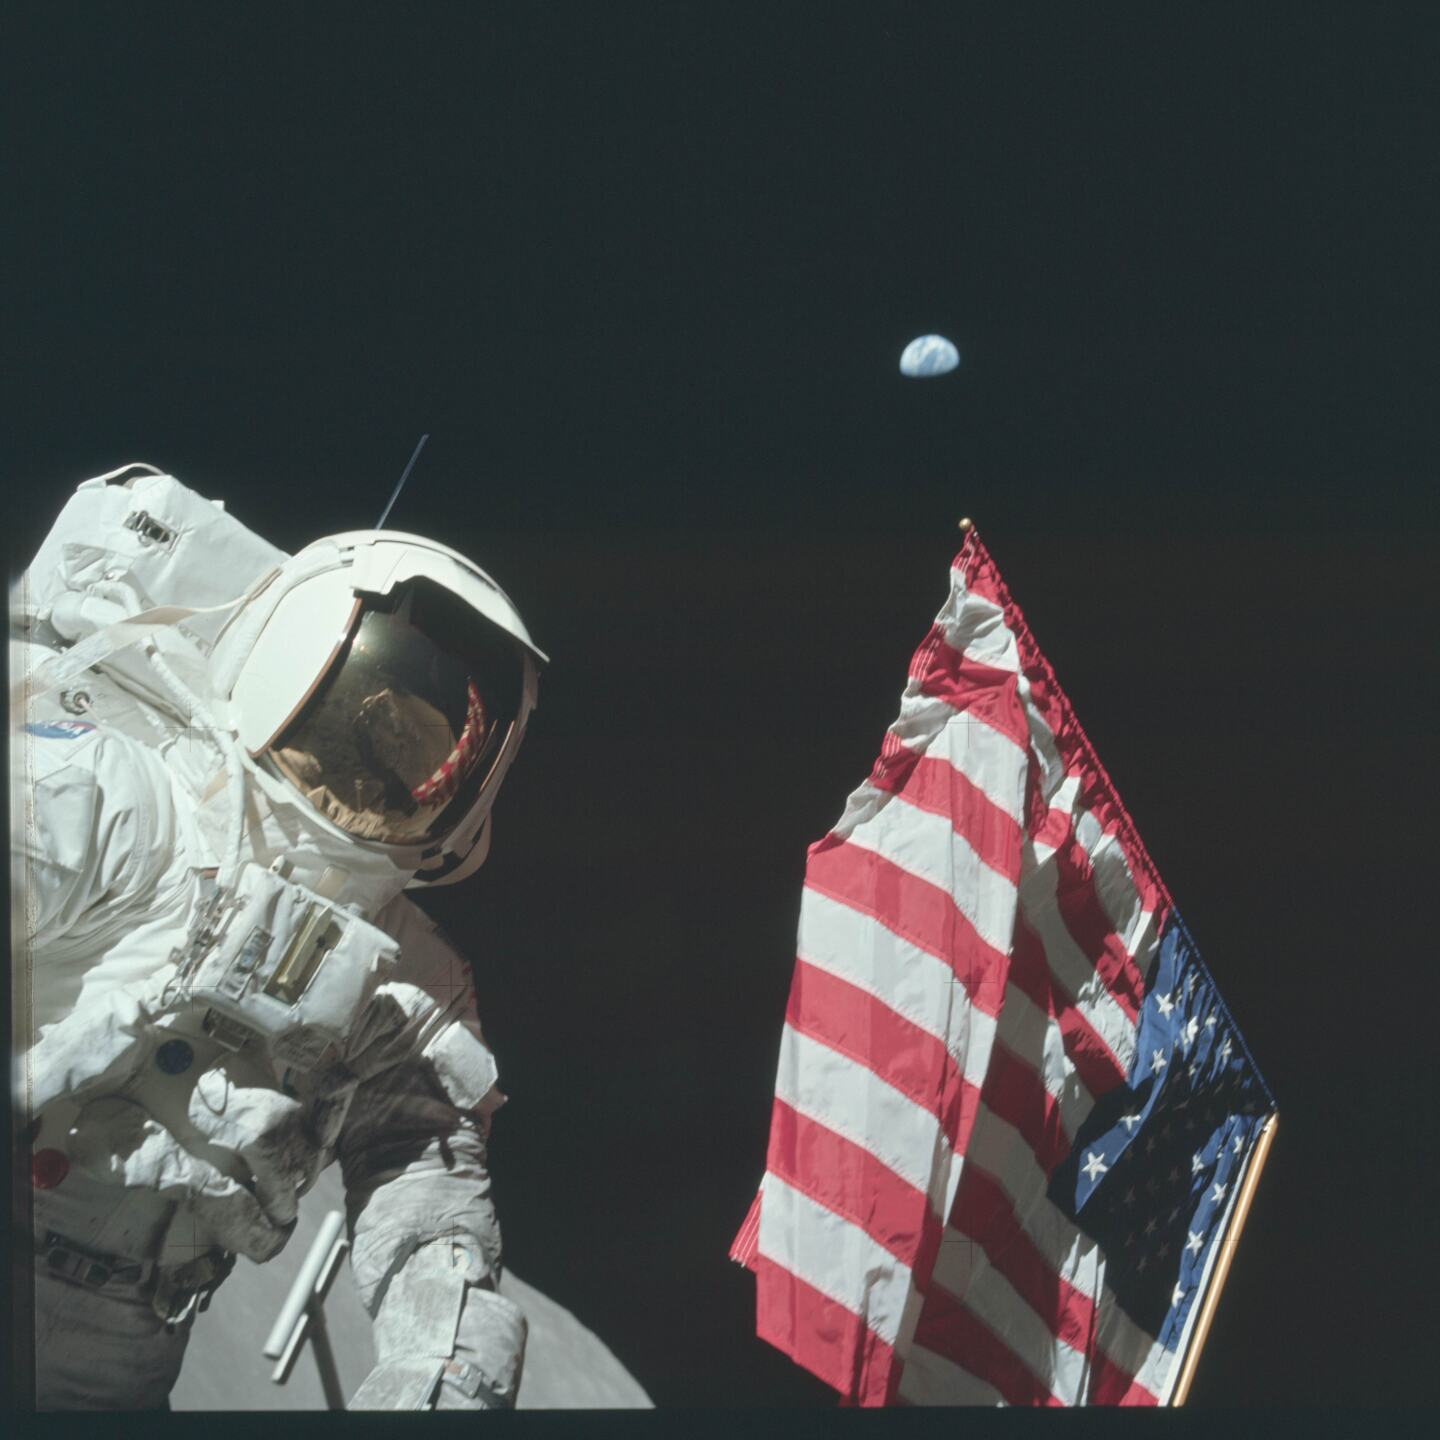 """From episode three: """"A Space Odyssey"""" Apollo 11 astronaut Buzz Aldrin plants the flag with planet Earth above, c. 1969. Courtesy NASA"""